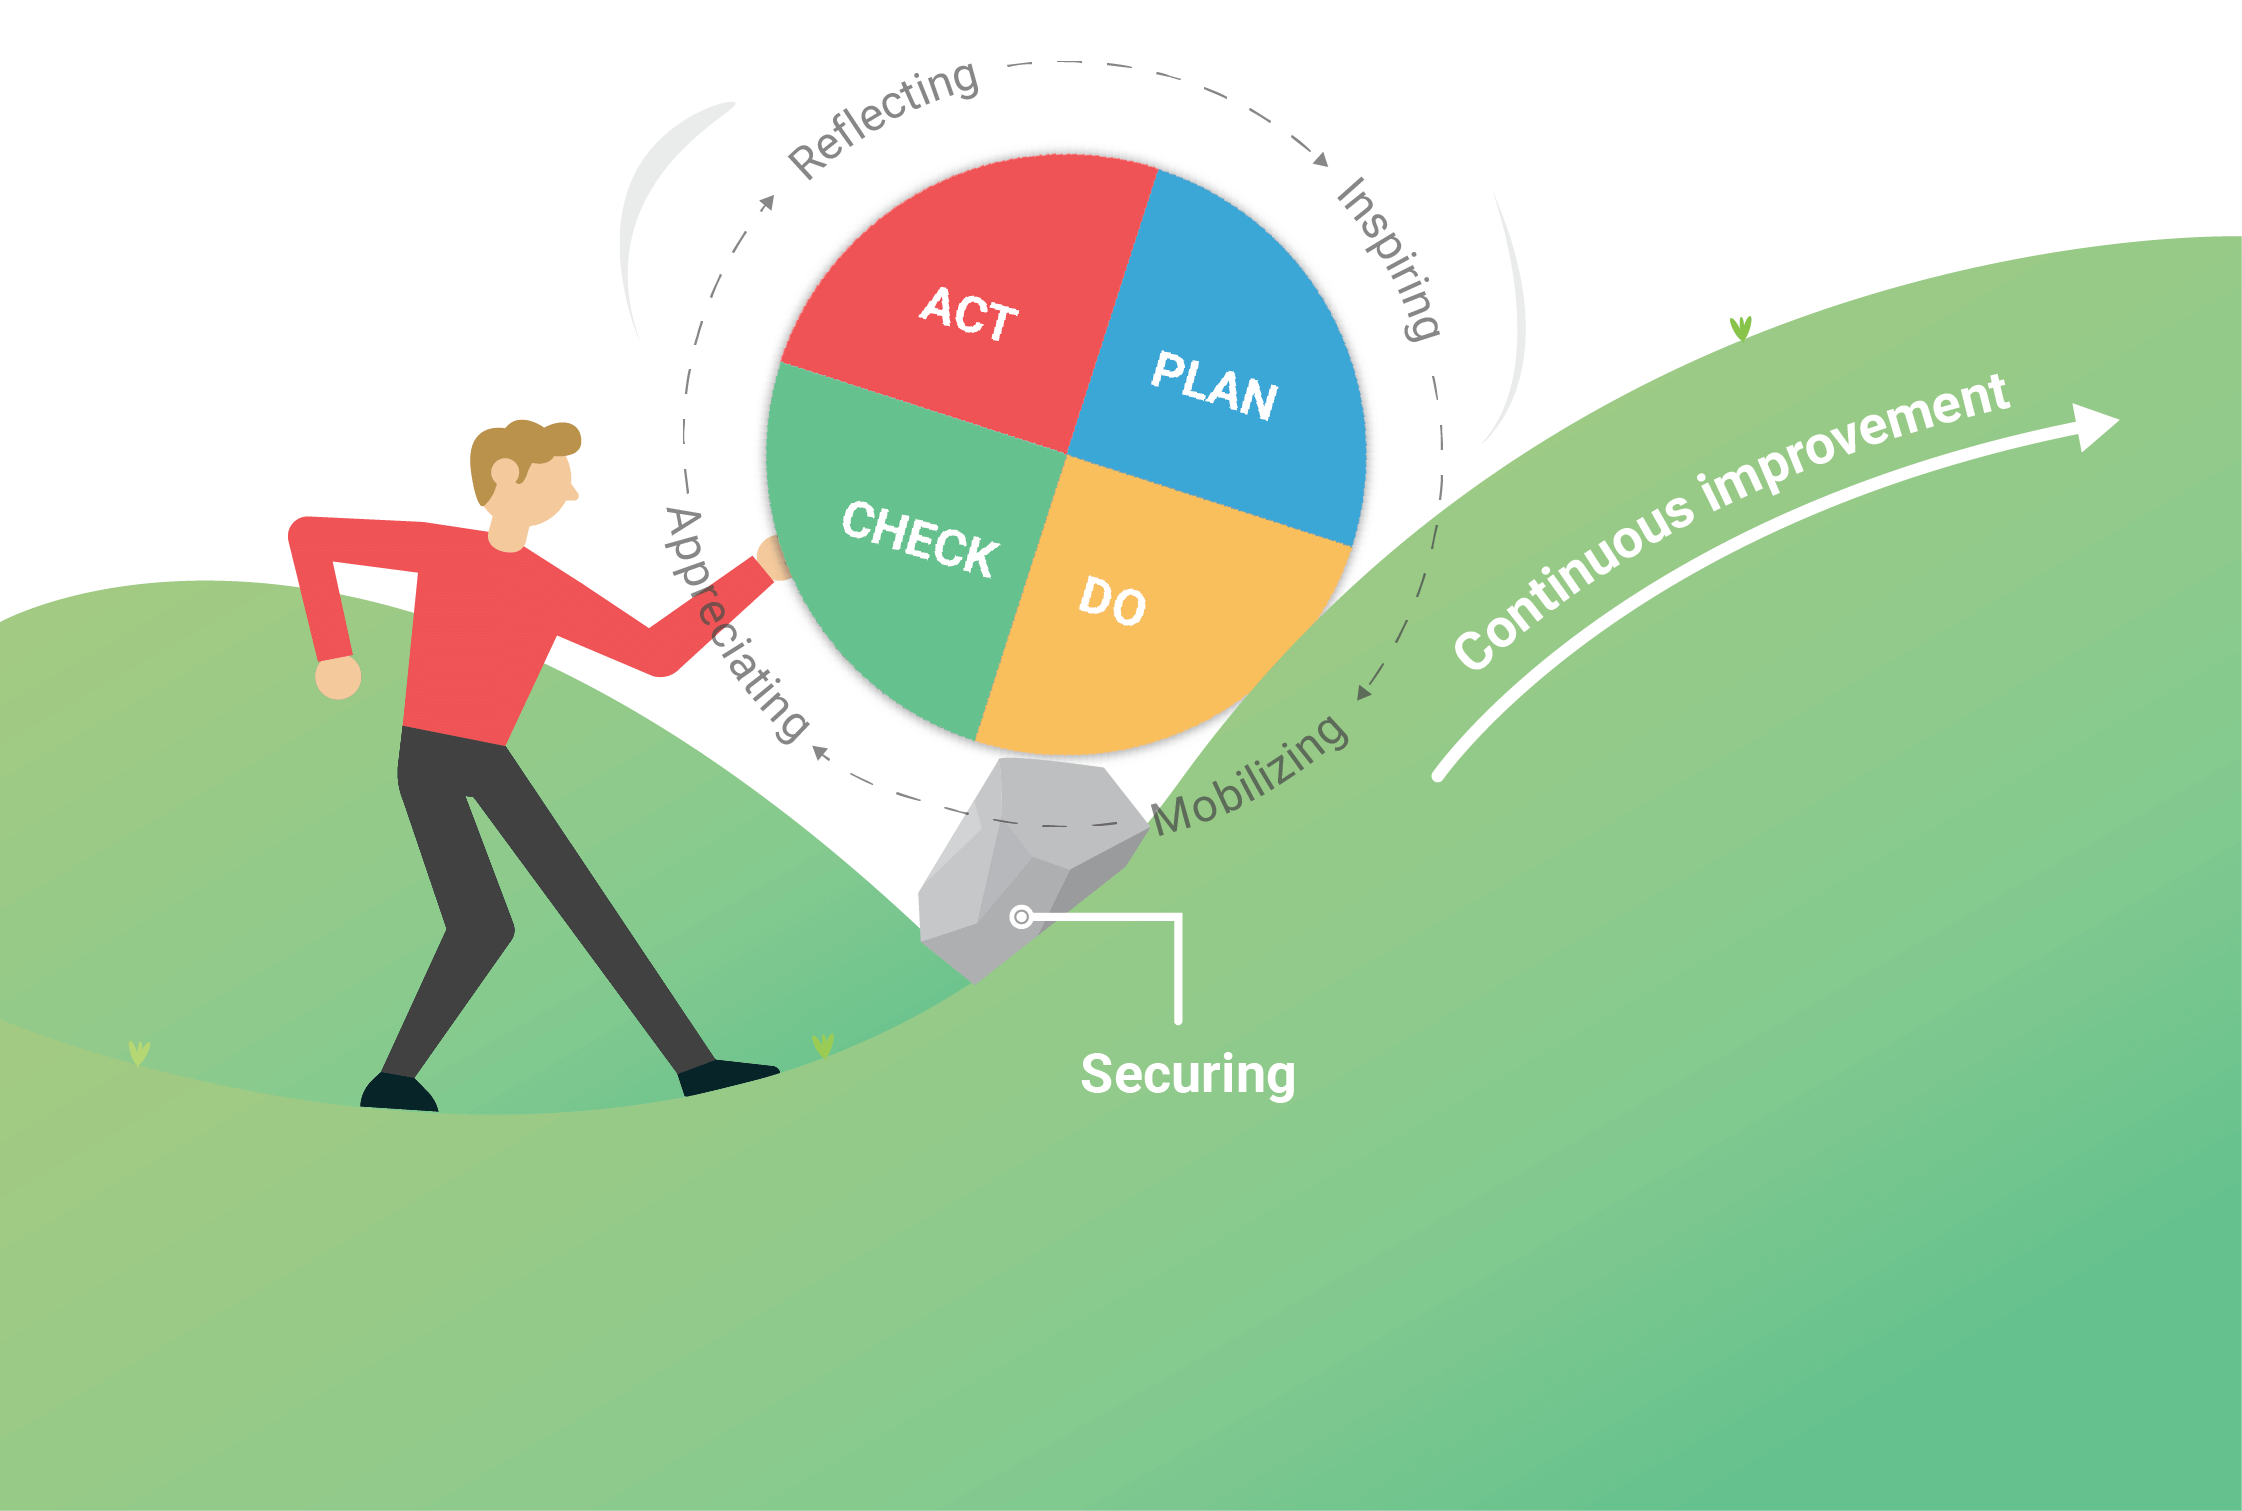 PDCA cycle in a nutshell